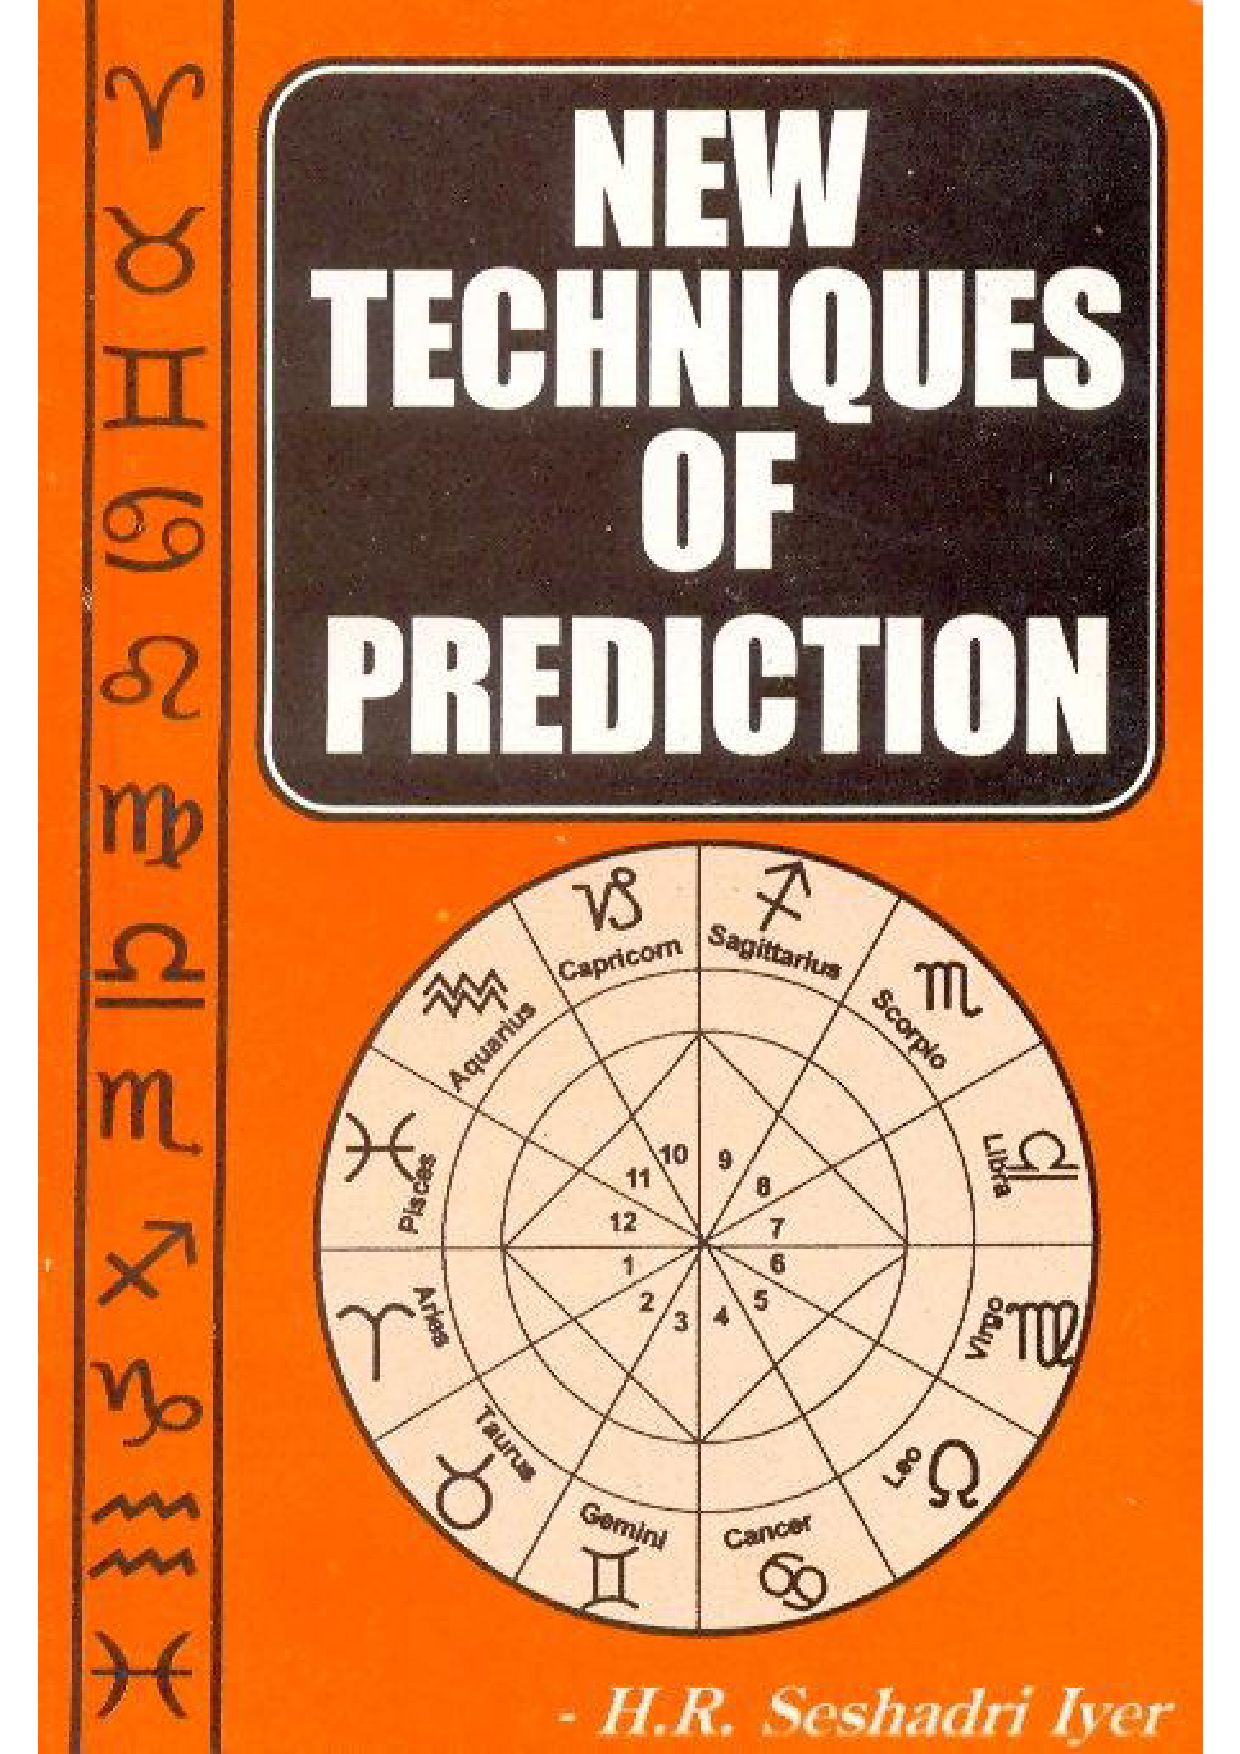 new techniques of prediction by hr seshadri iyer